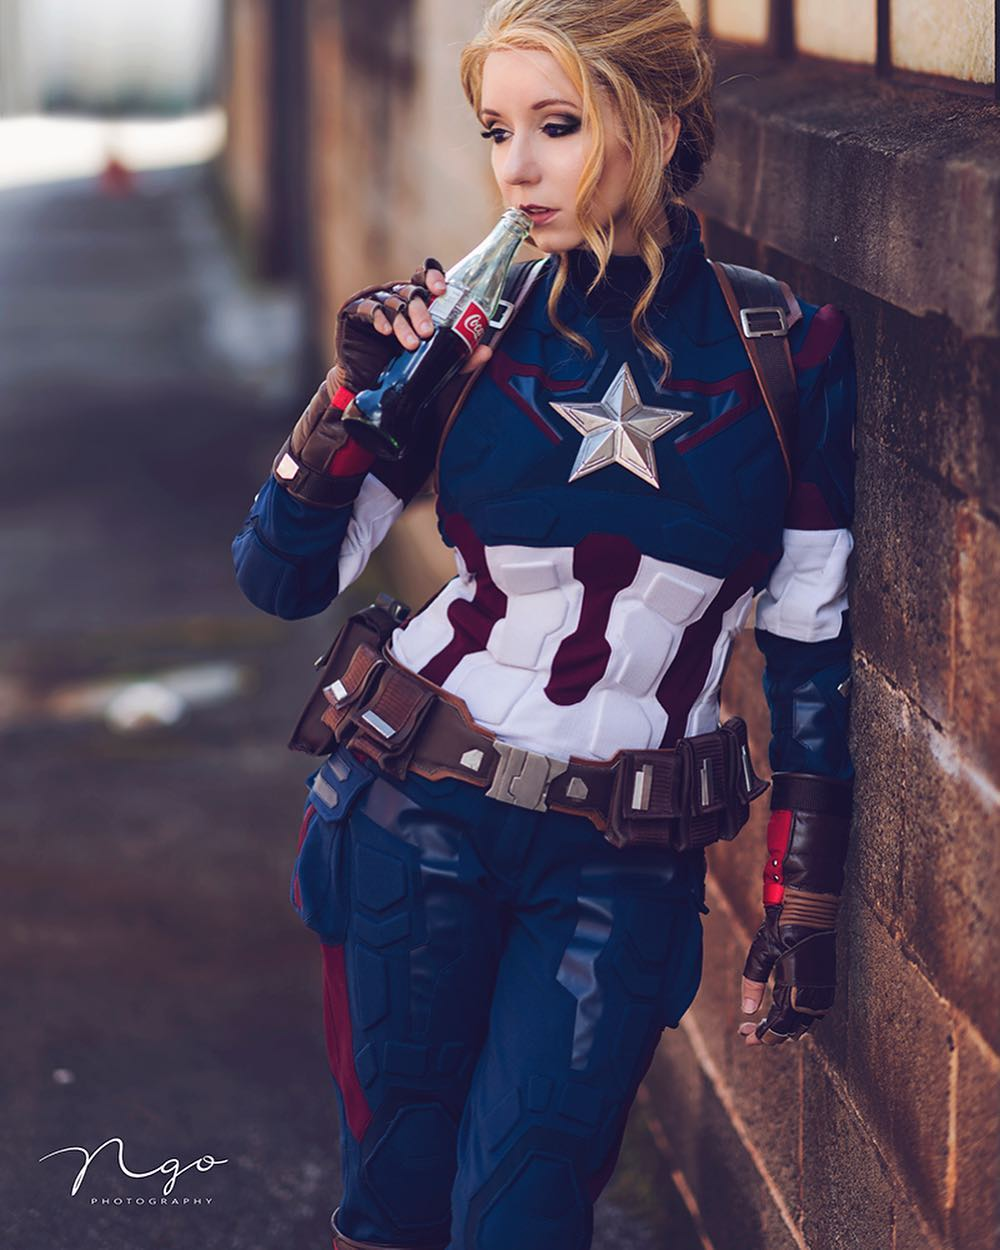 """Riki Le Cotey on Instagram: """"""""NAFTA.. Captain America, Mexican coke and a Canadian cosplayer"""" Photo by @hngophotography #captainamerica #marvel #infinitywar…"""""""